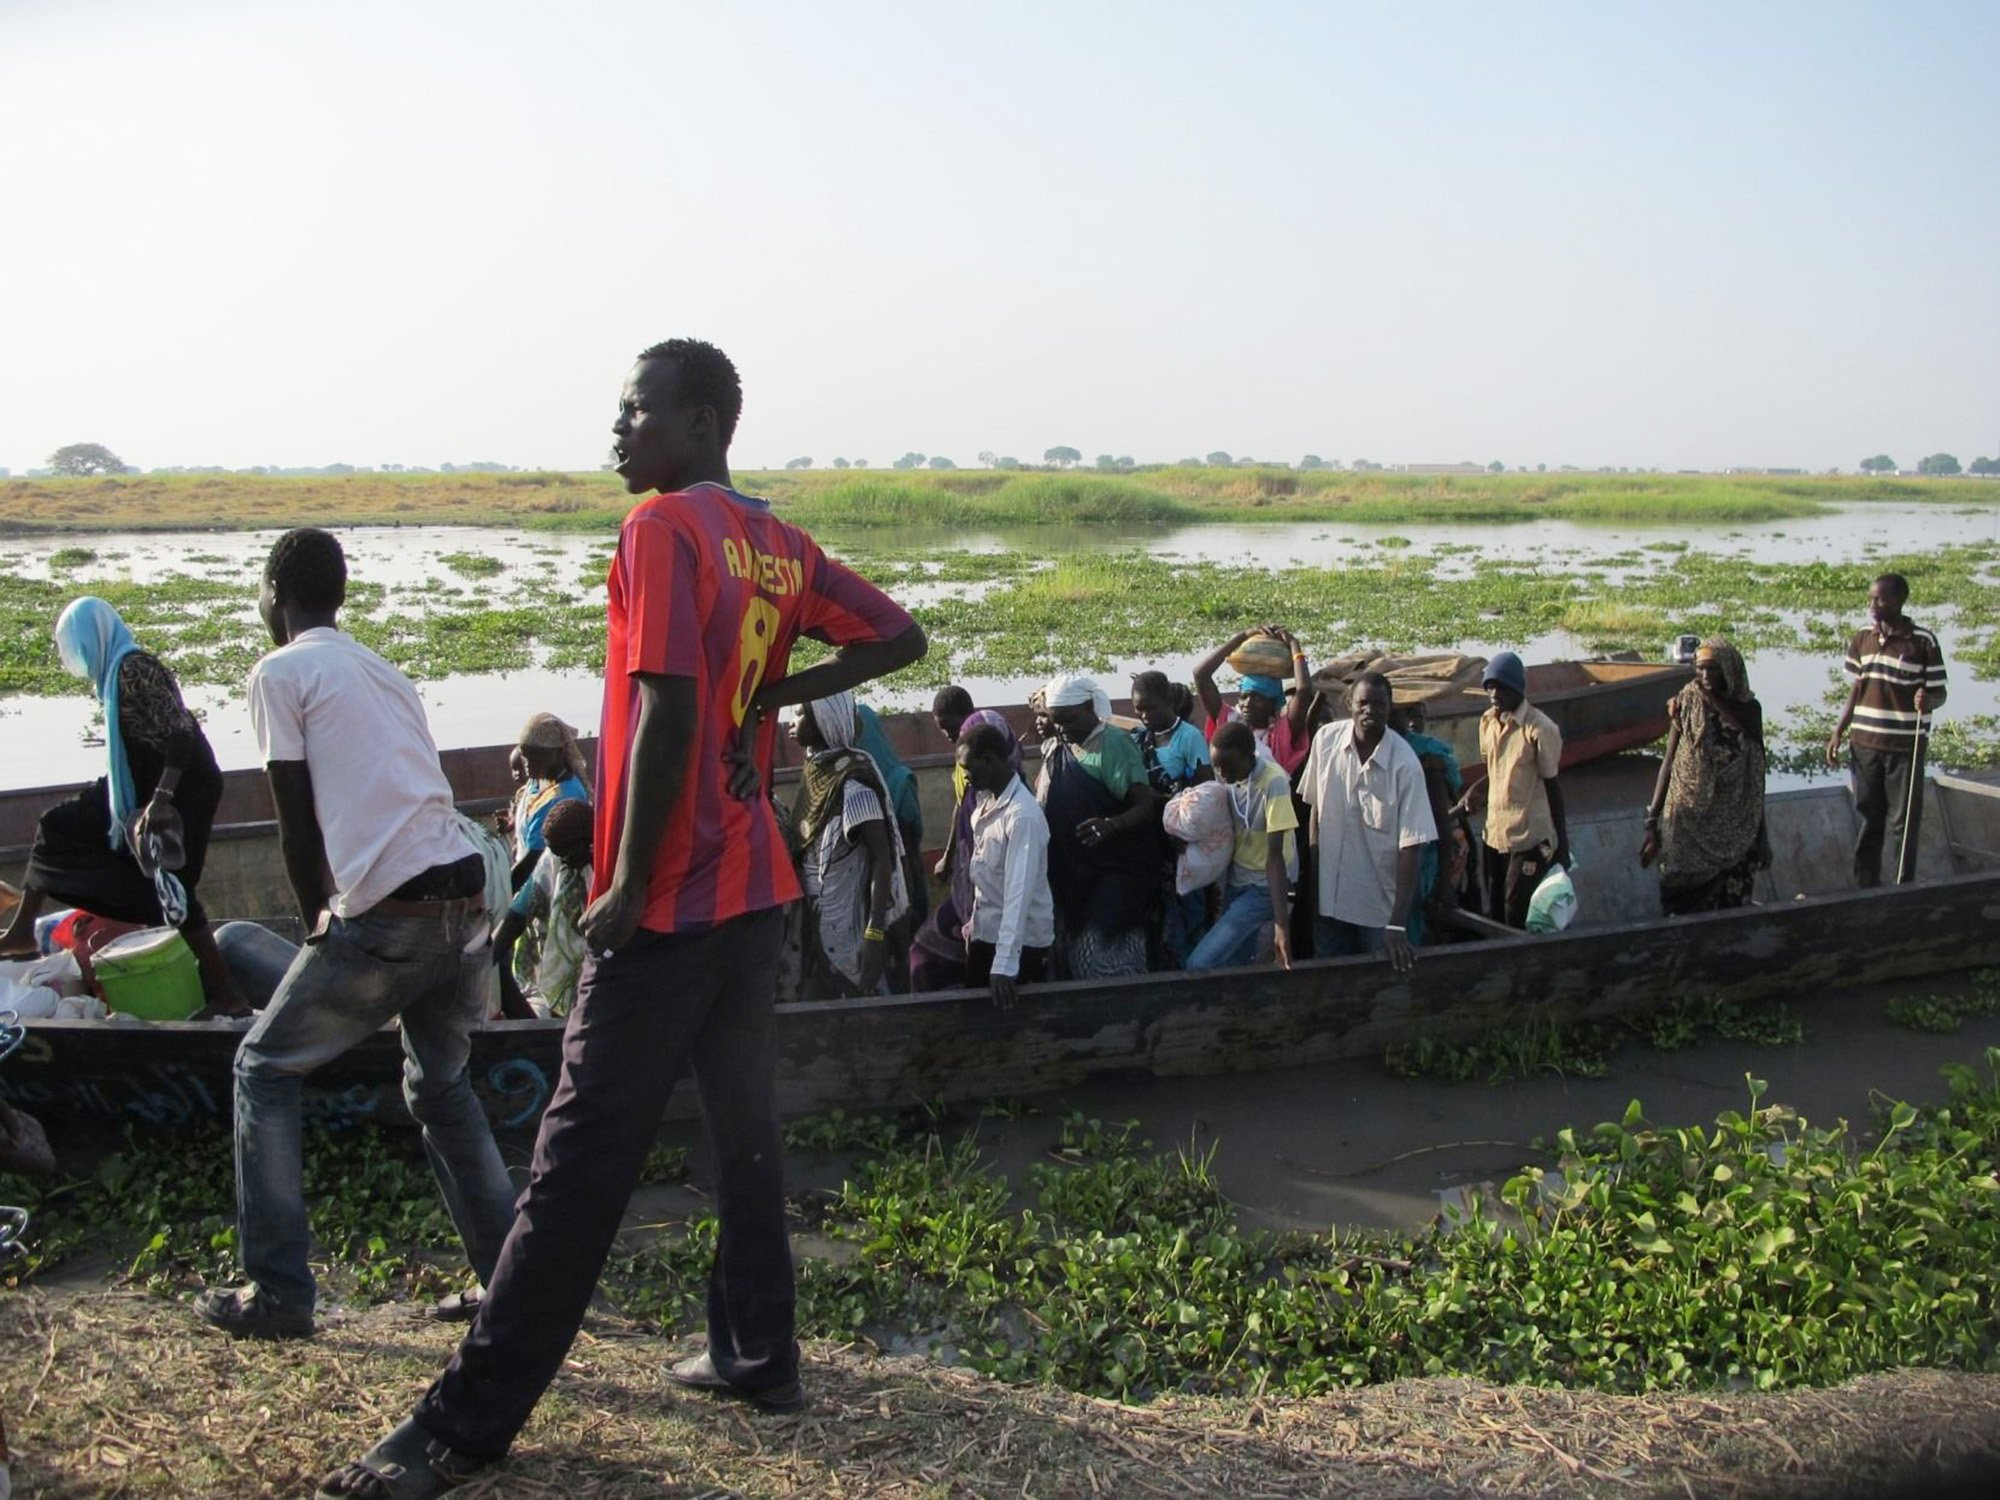 Continuing clashes in Upper Nile state leading to more deaths and displacements of people. Photo: Beatrice Debut